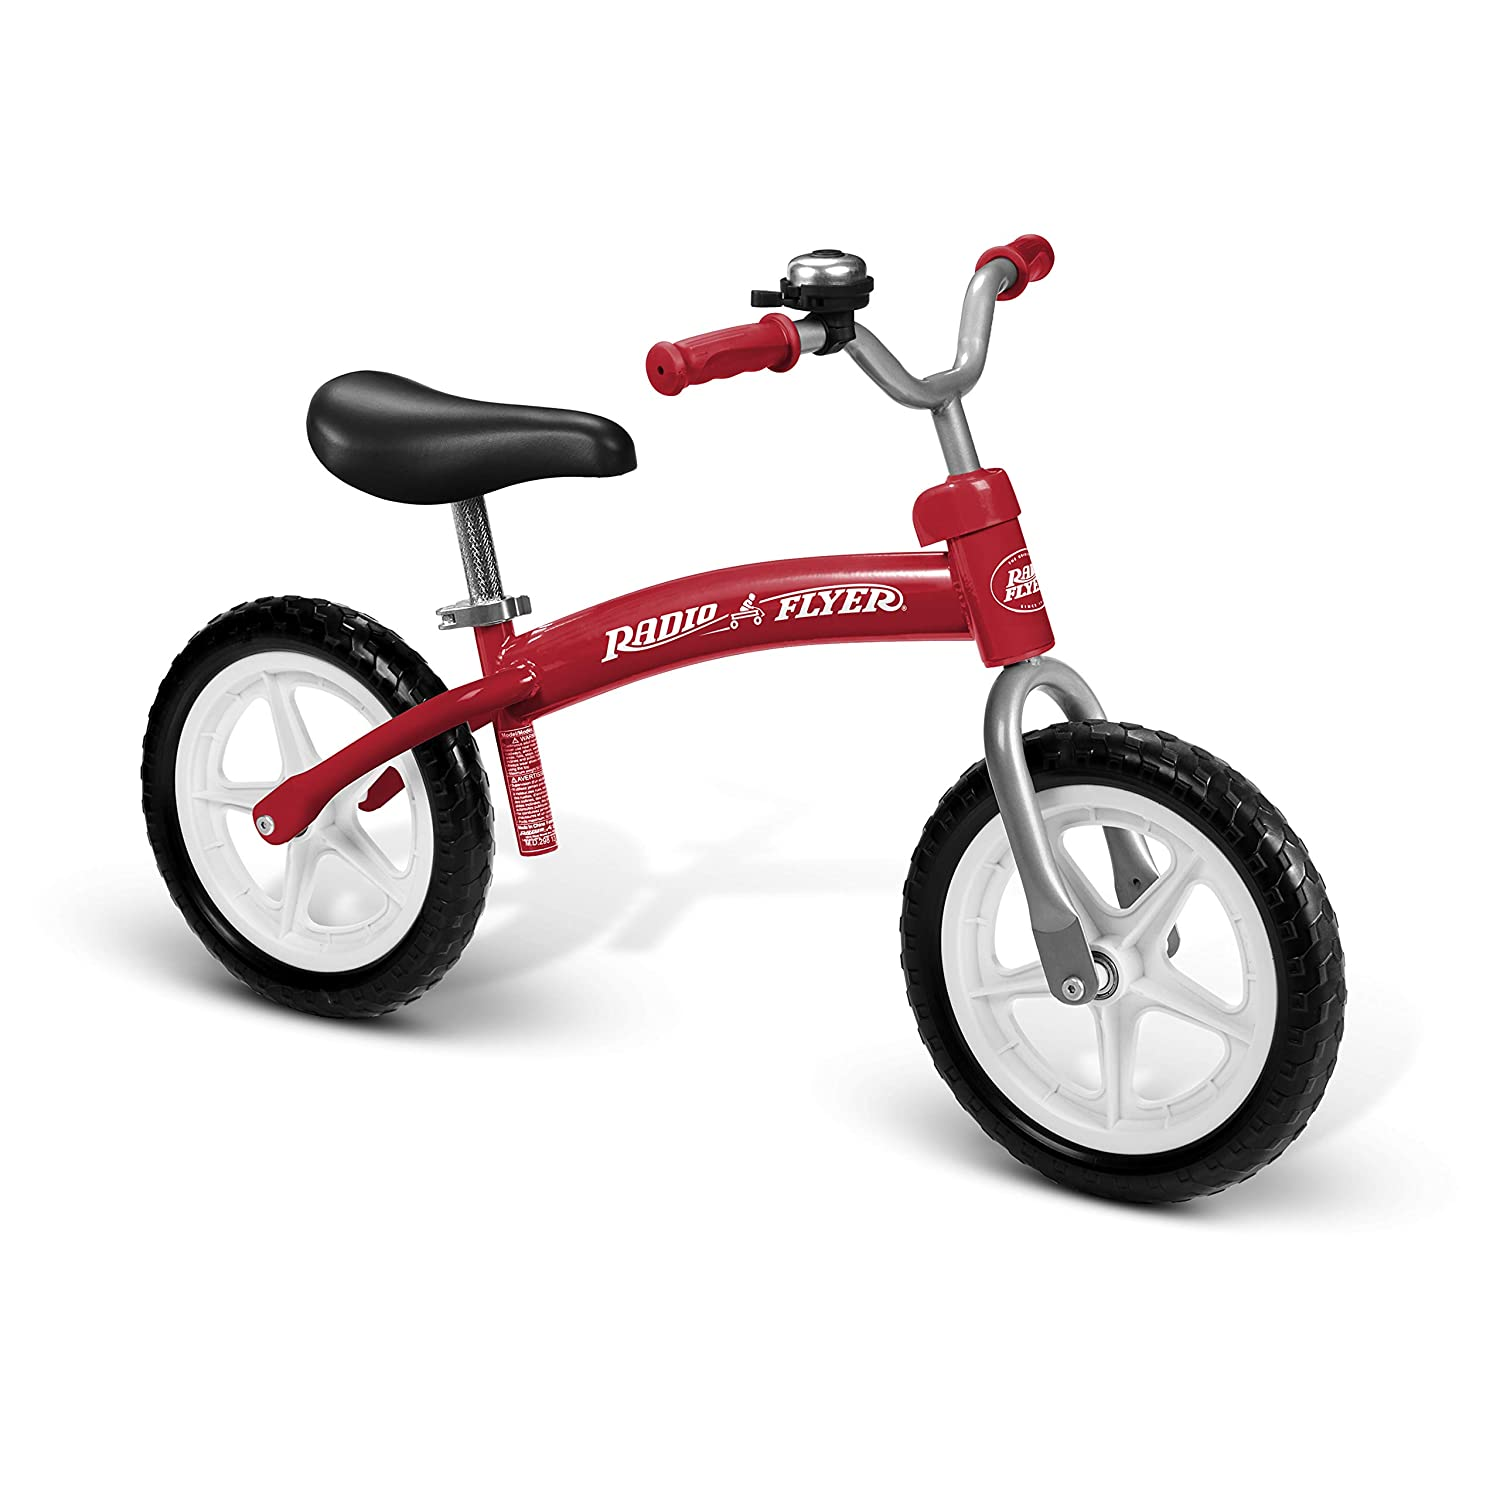 Top 11 Best Balance Bikes for Toddlers Reviews in 2020 4